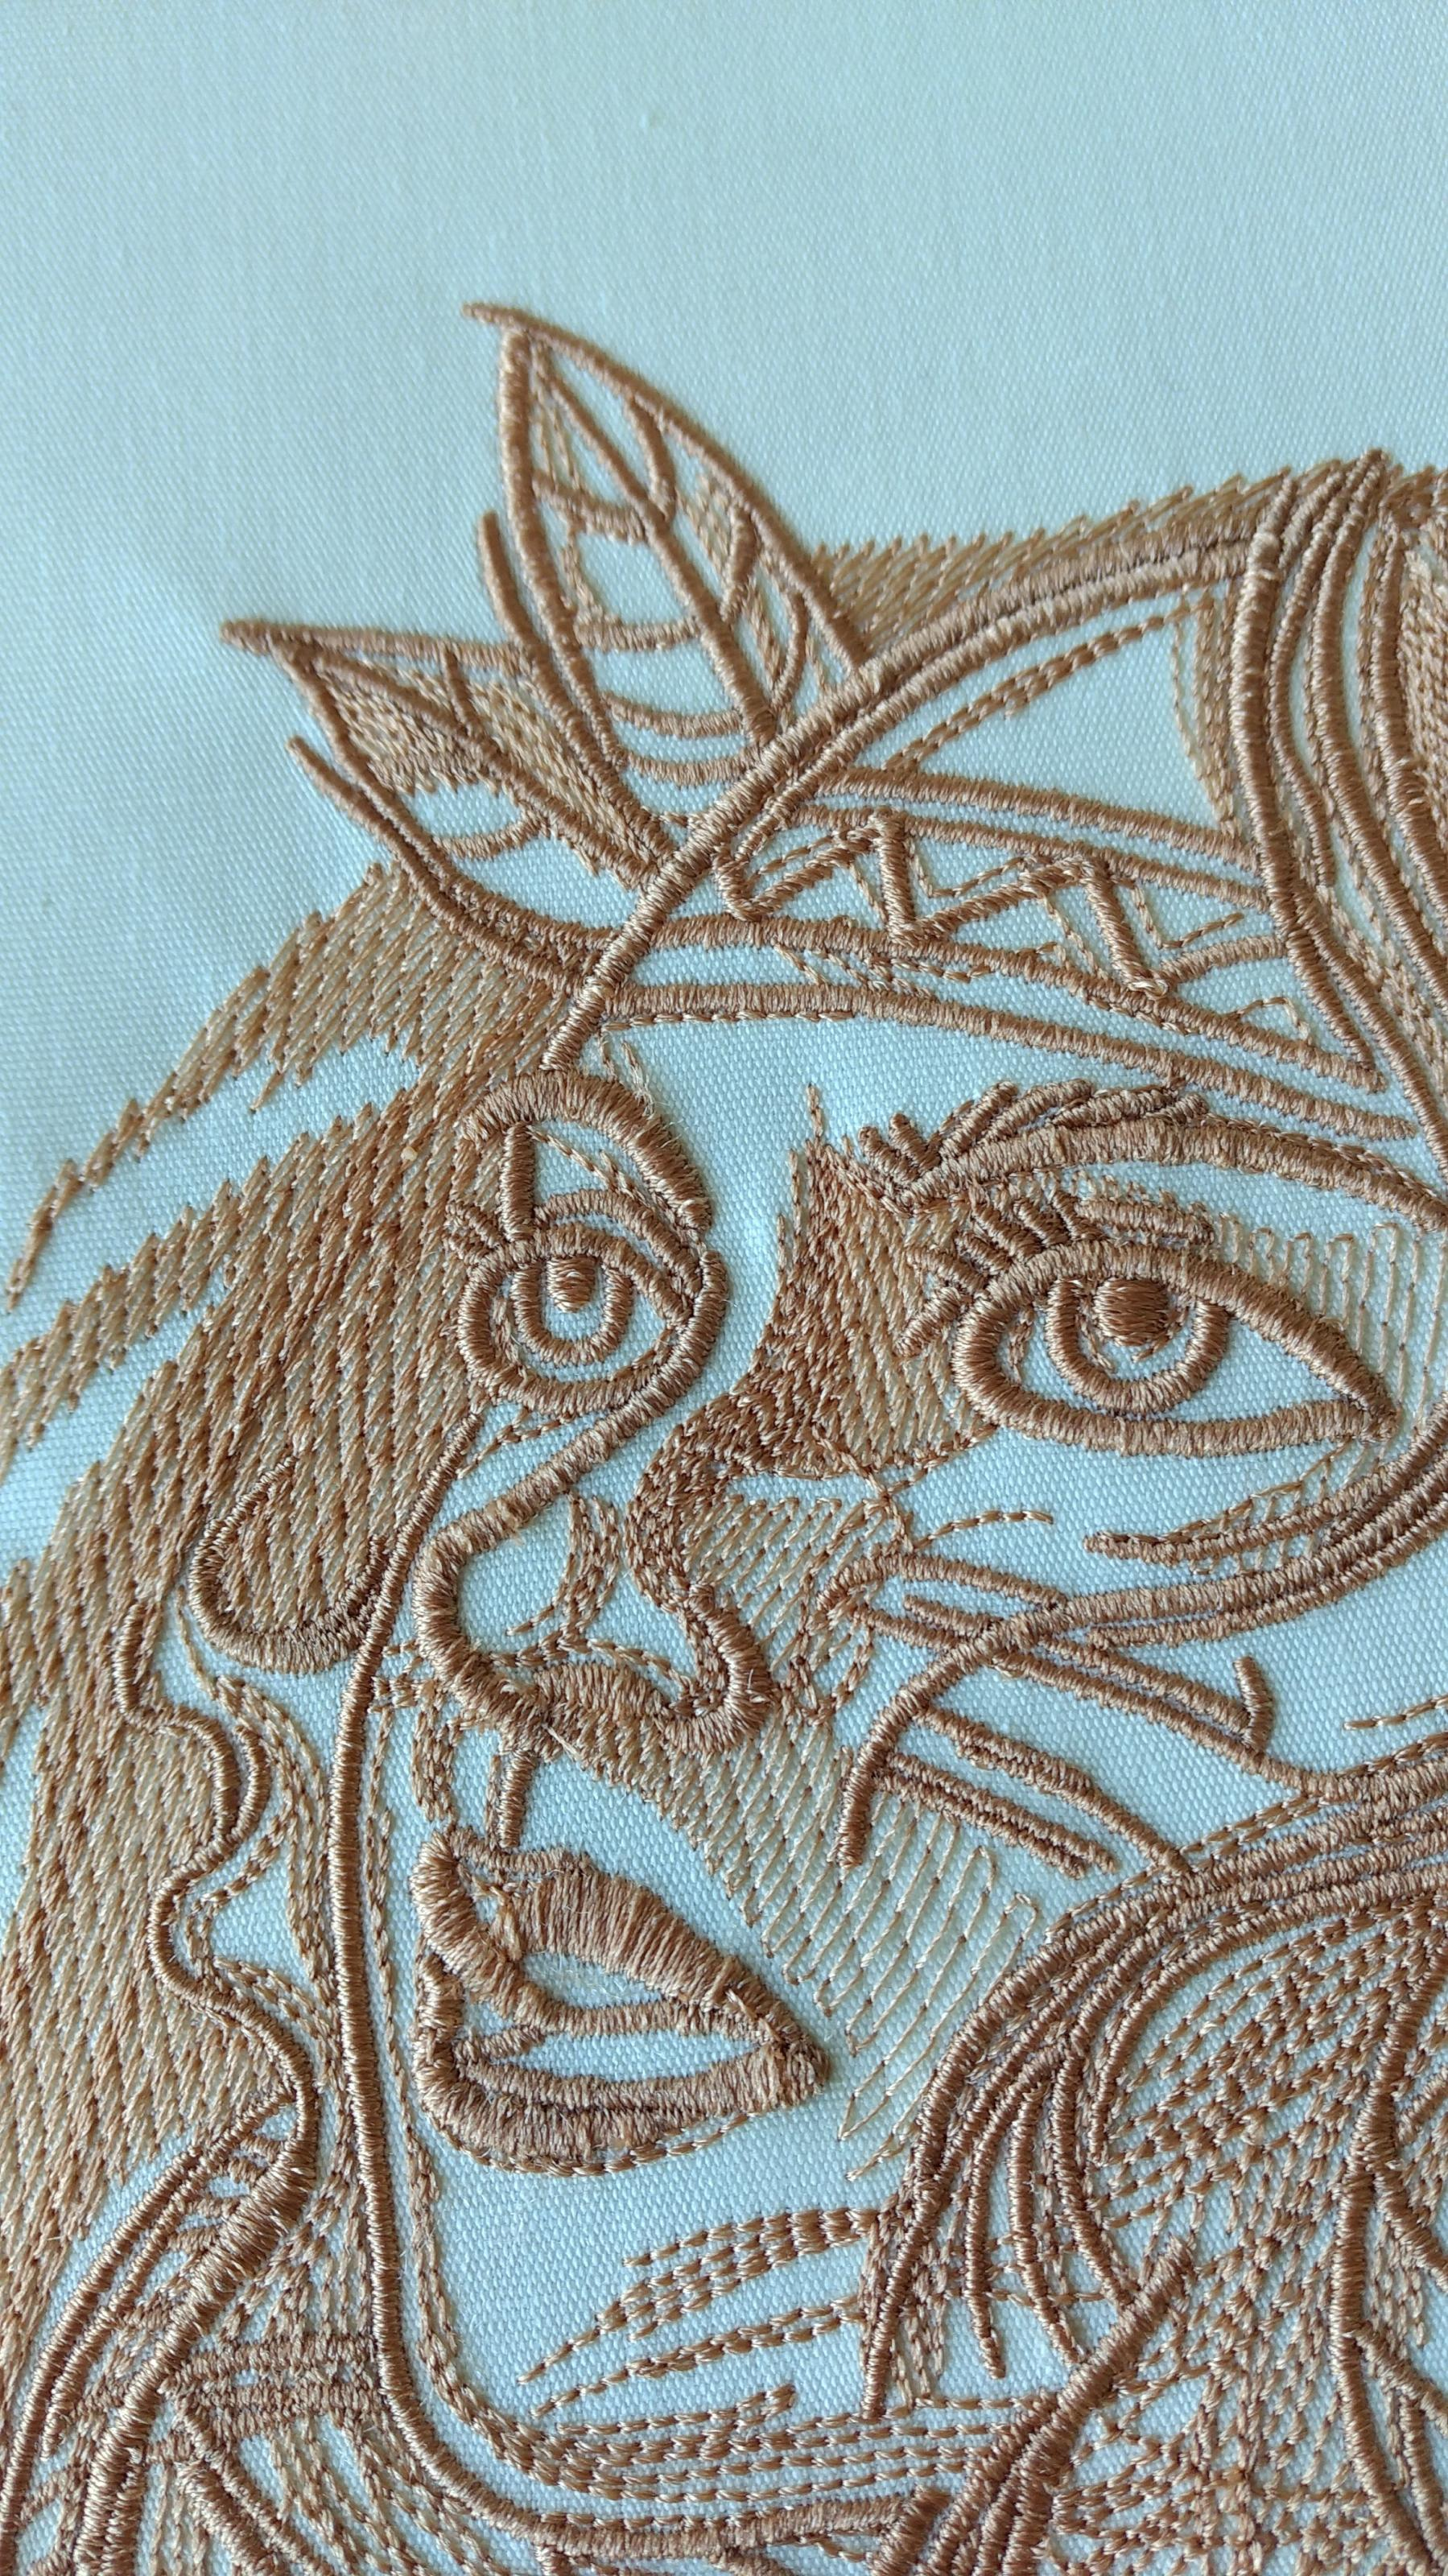 Young woman face embroidery design